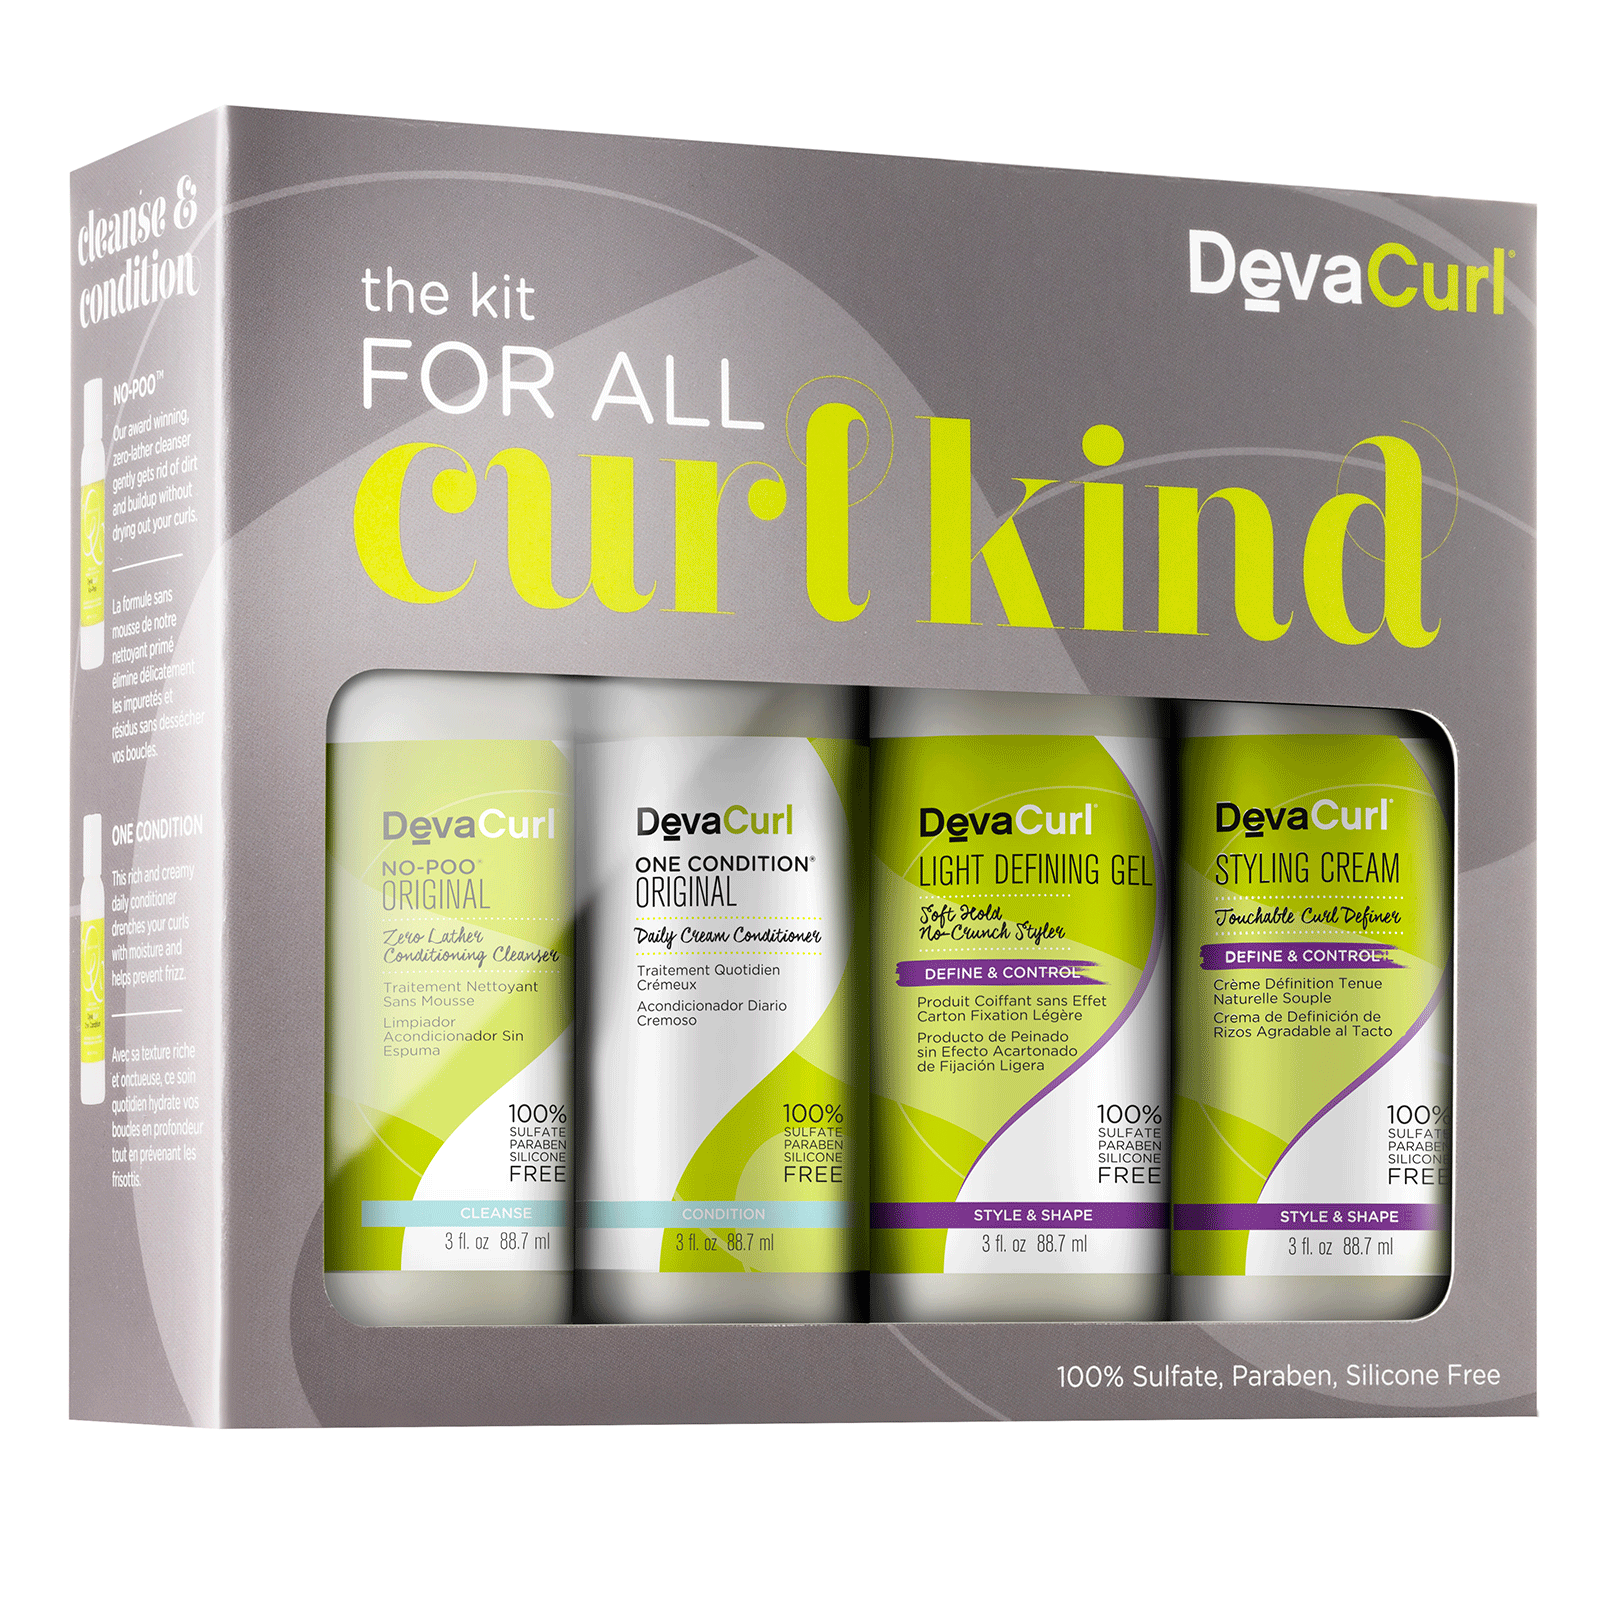 The Kit For All Curl Kind